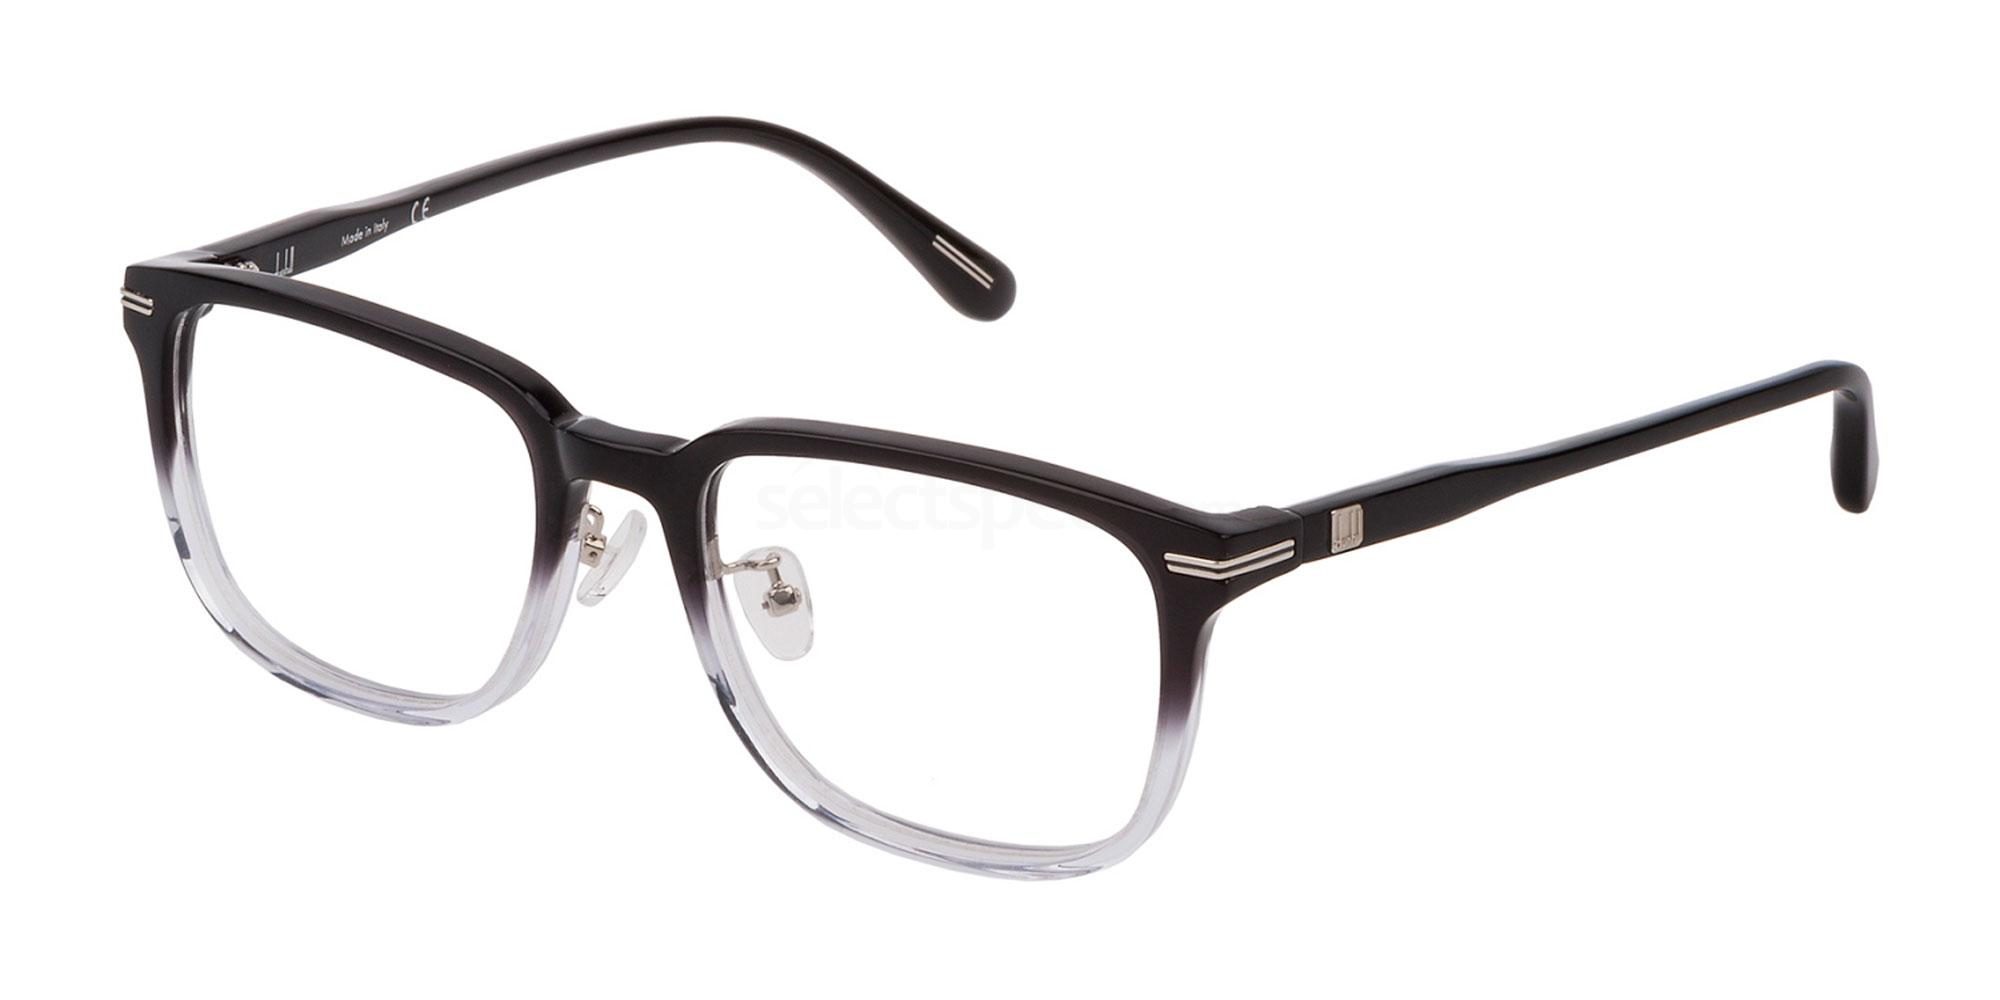 0W40 VDH141G Glasses, Dunhill London